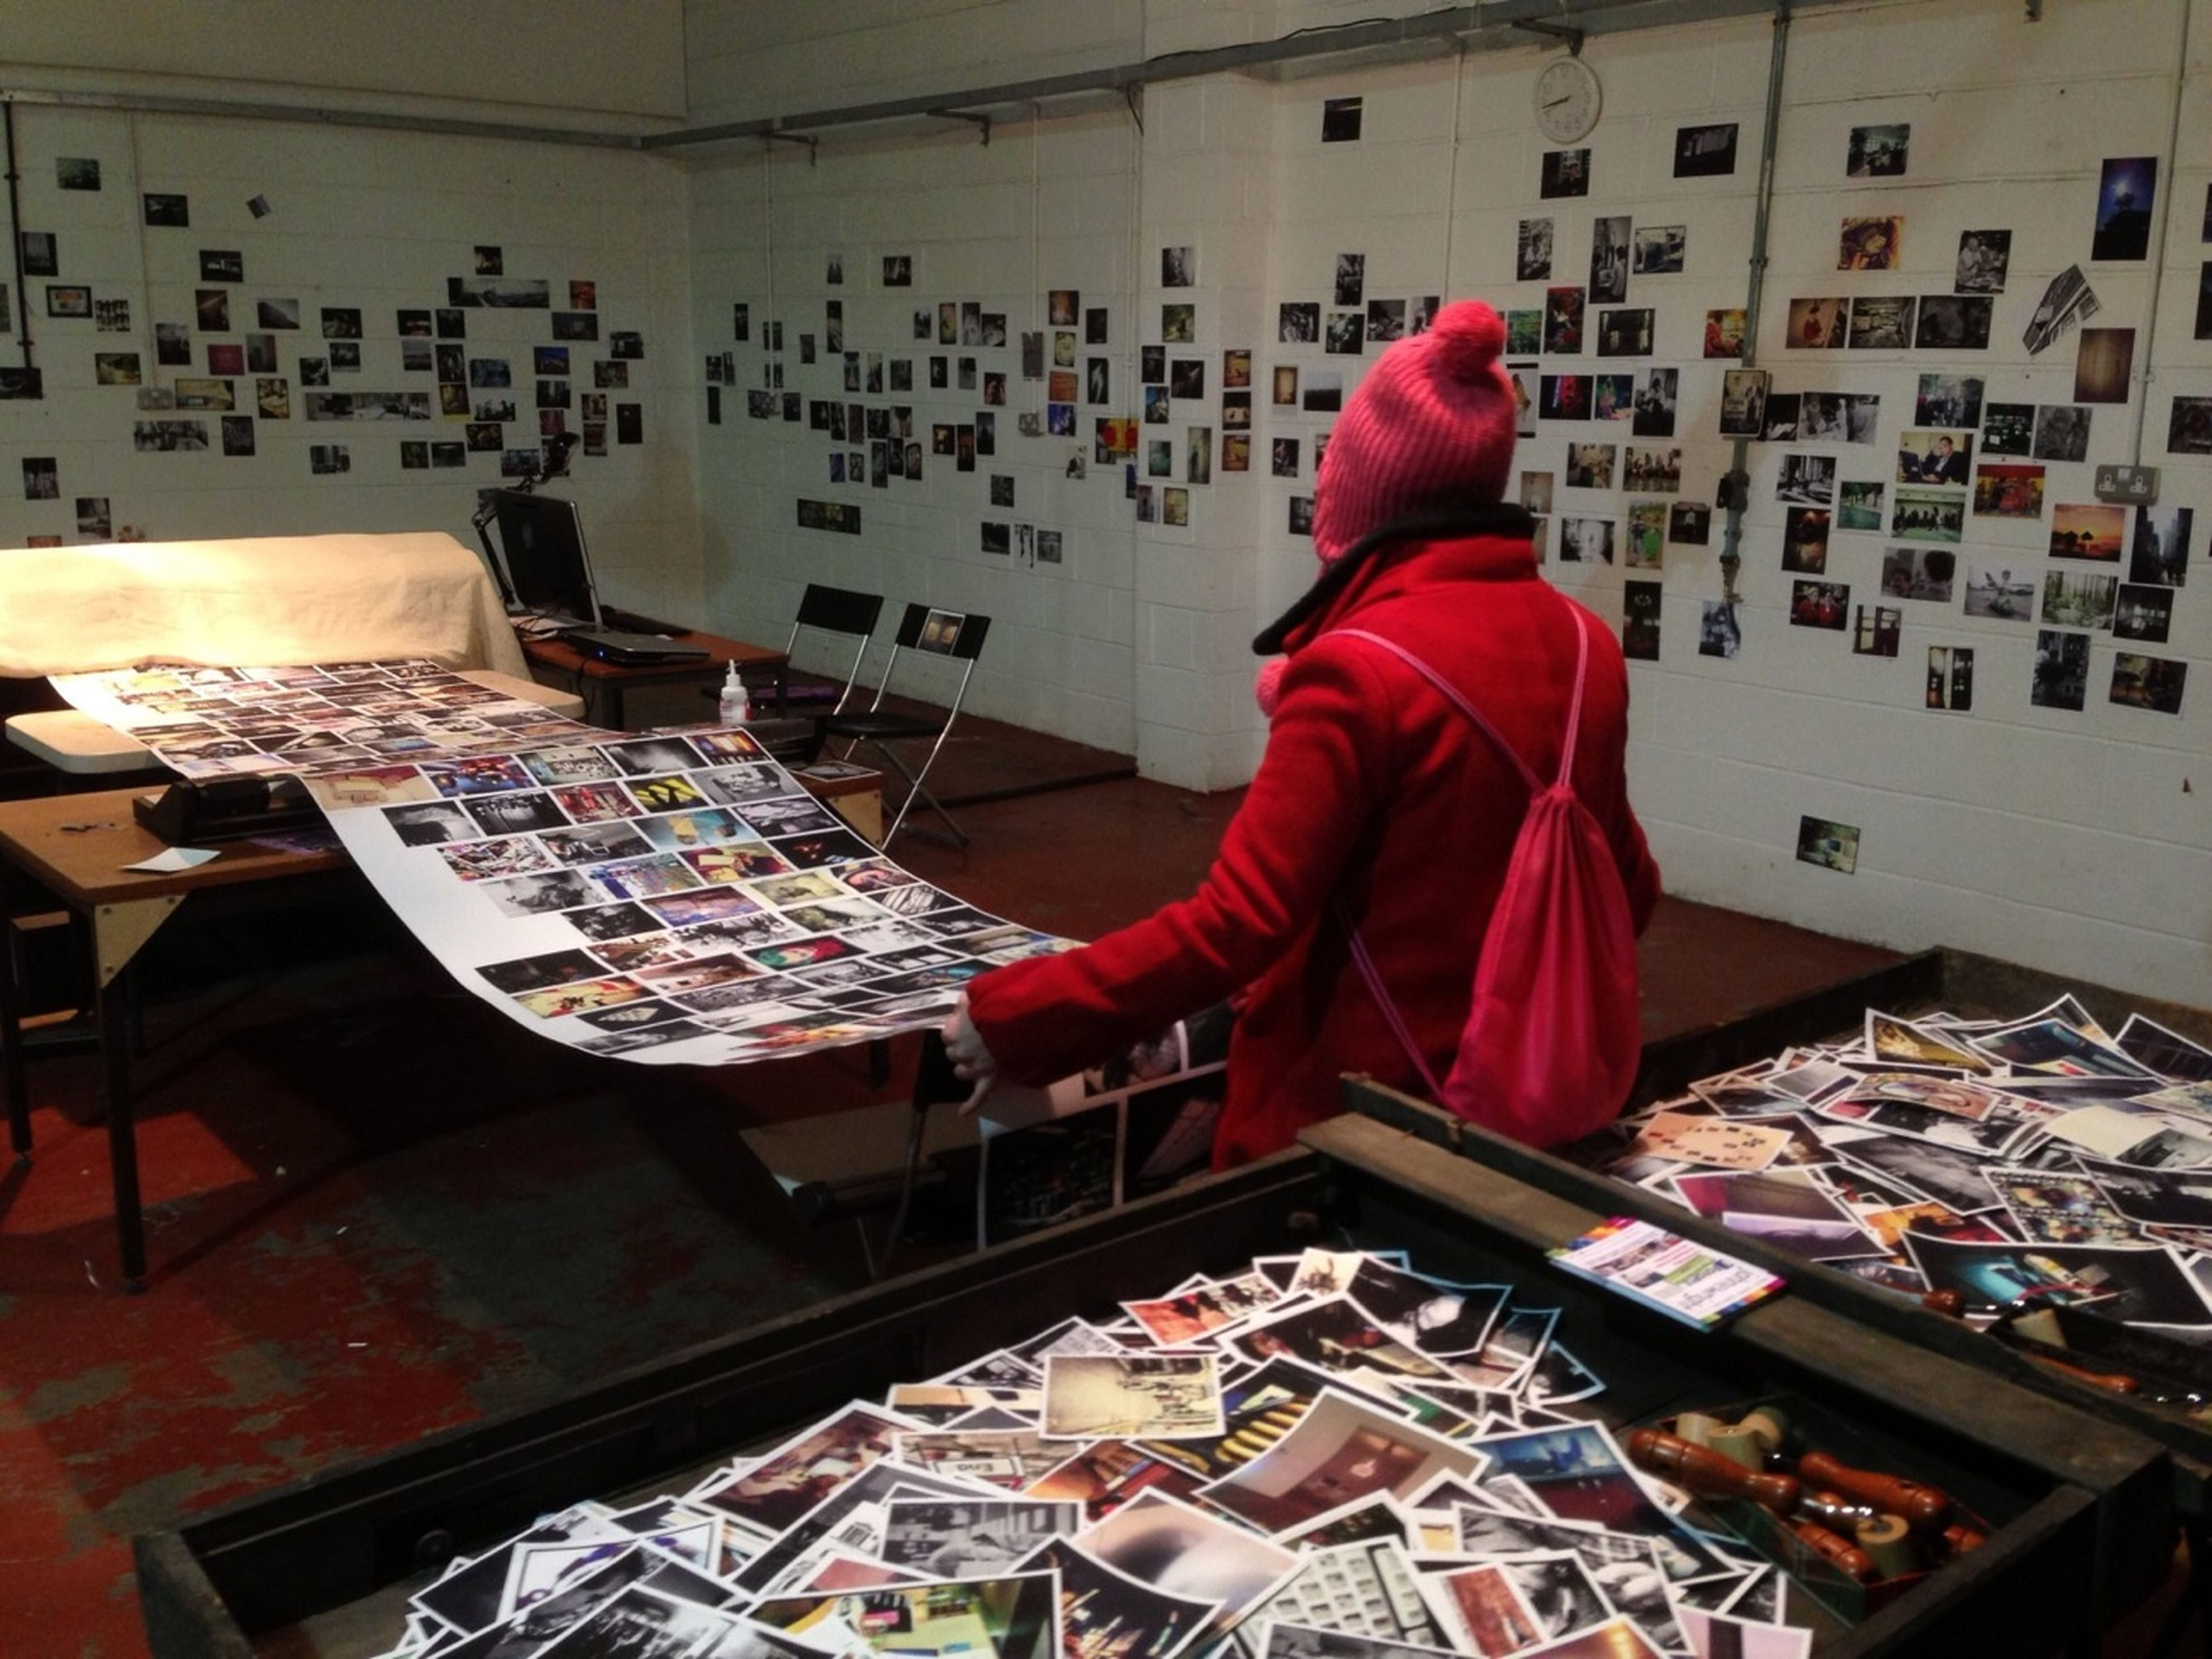 Over 2,200 photos already printed for #MobFORMAT: The Press @formatfestival #FORMAT13 The Press - Work